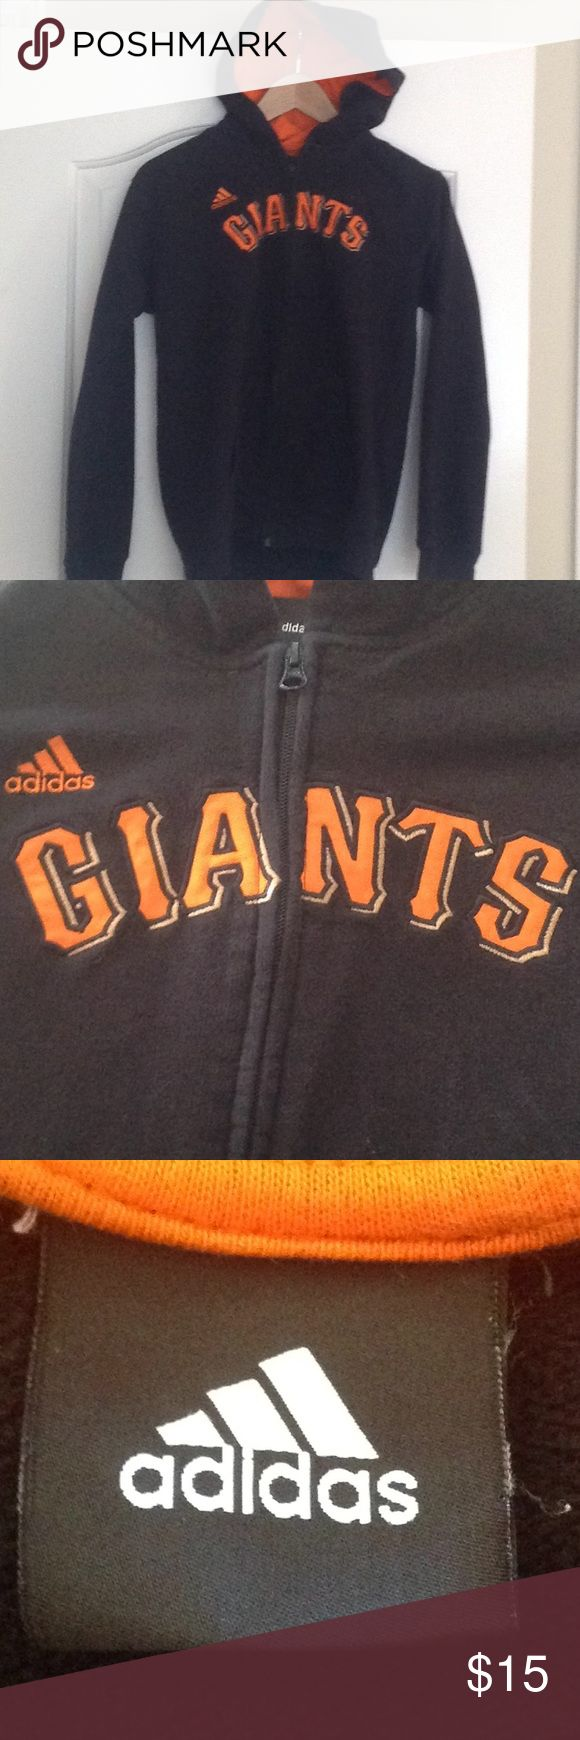 Adidas GIANTS zip up hoodie Youth L SF GIANTS zip up hoodie sweatshirt. Black with orange inside the hood.  Giants appliqué on front.  55% cotton/45% polyester.  In very good condition.  Unisex Youth Large. adidas Shirts & Tops Sweatshirts & Hoodies